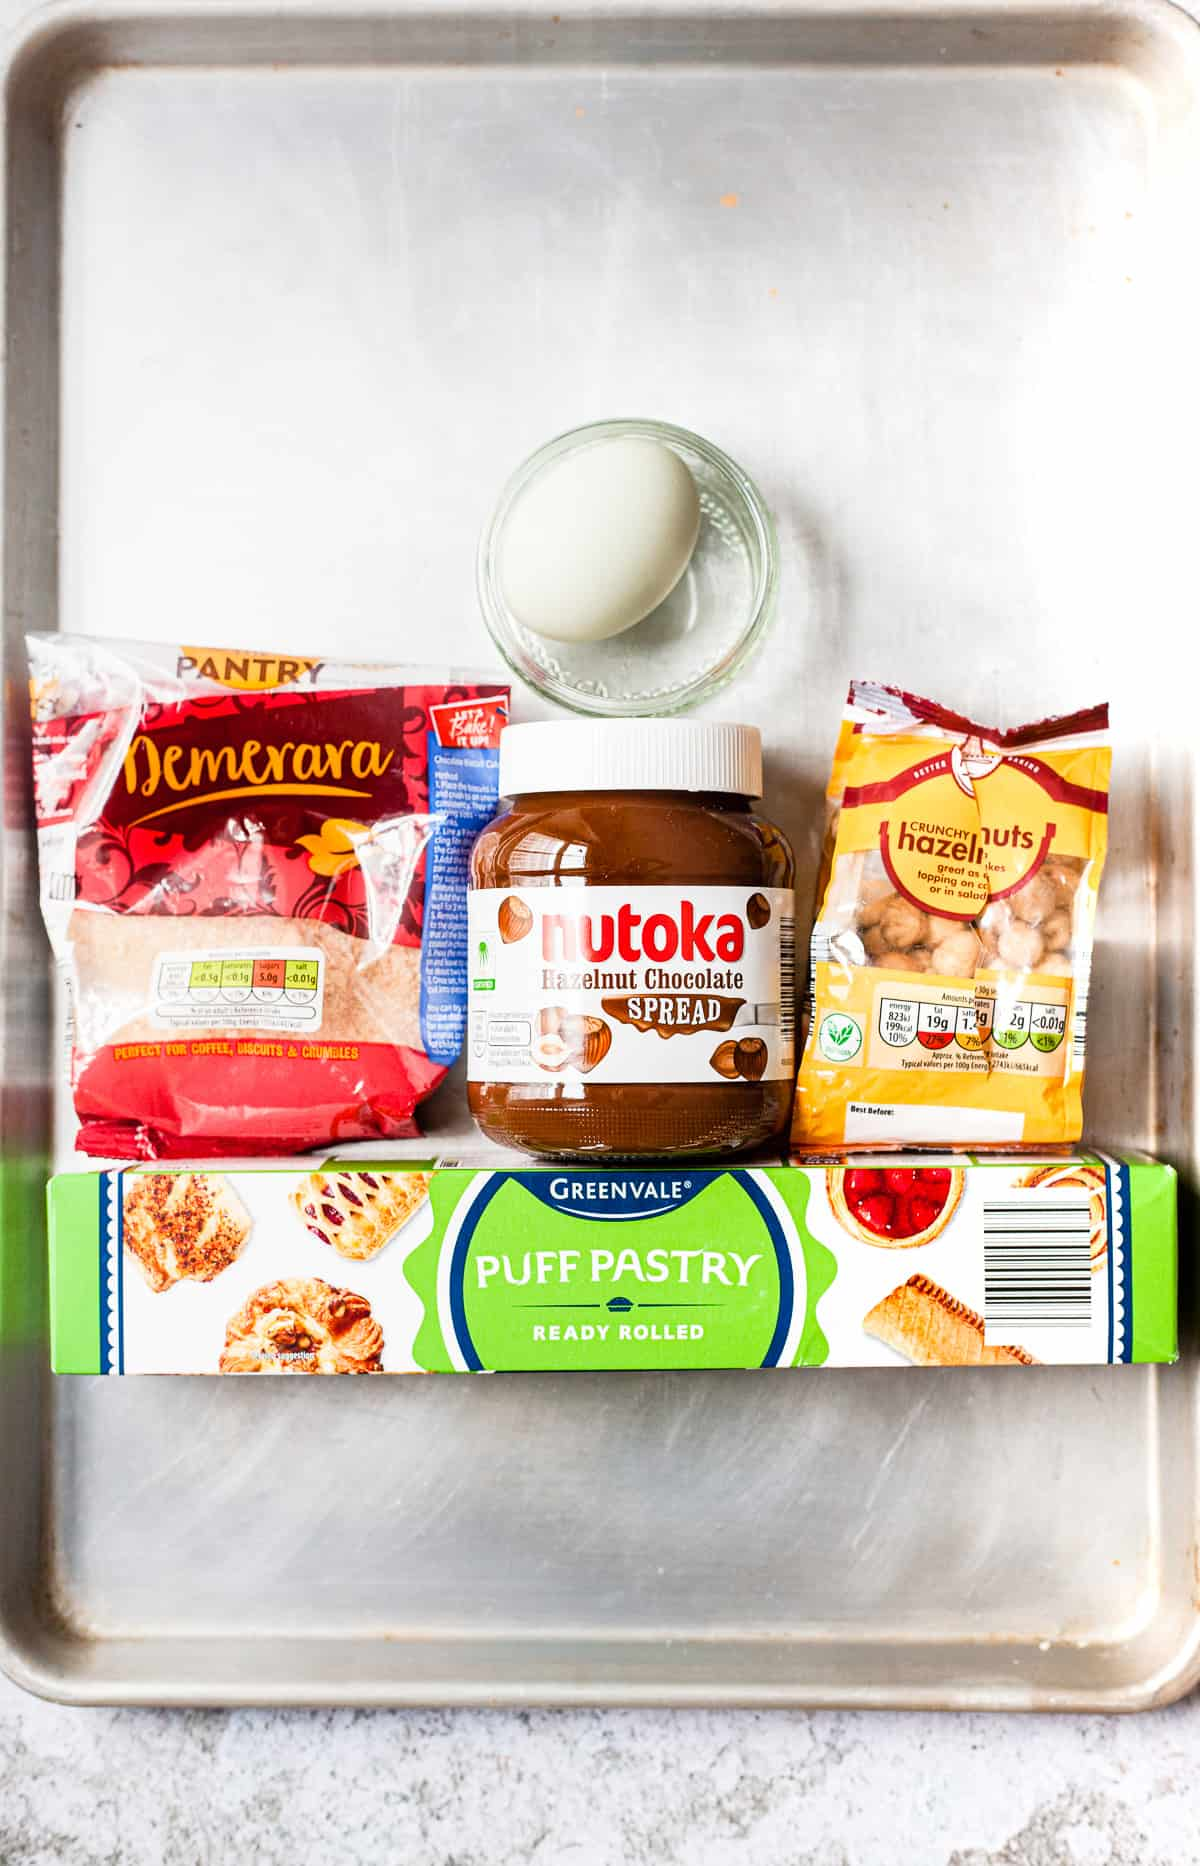 Aldi ingredients for Nutella puff pastry on a baking tray